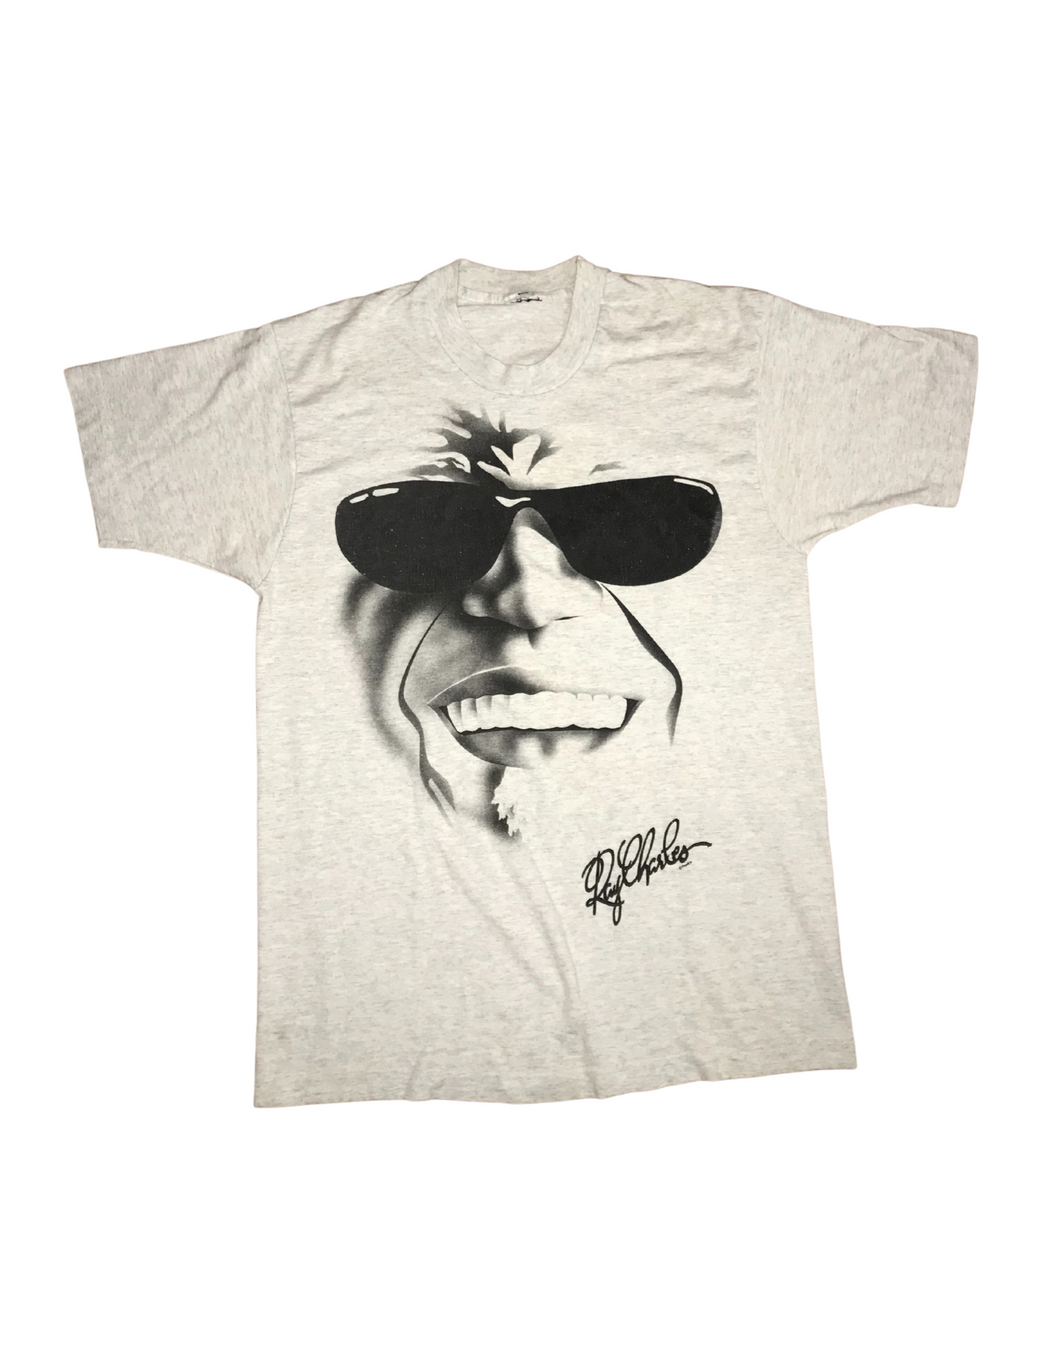 Vintage Pepsi Ray Charles t shirt size Large